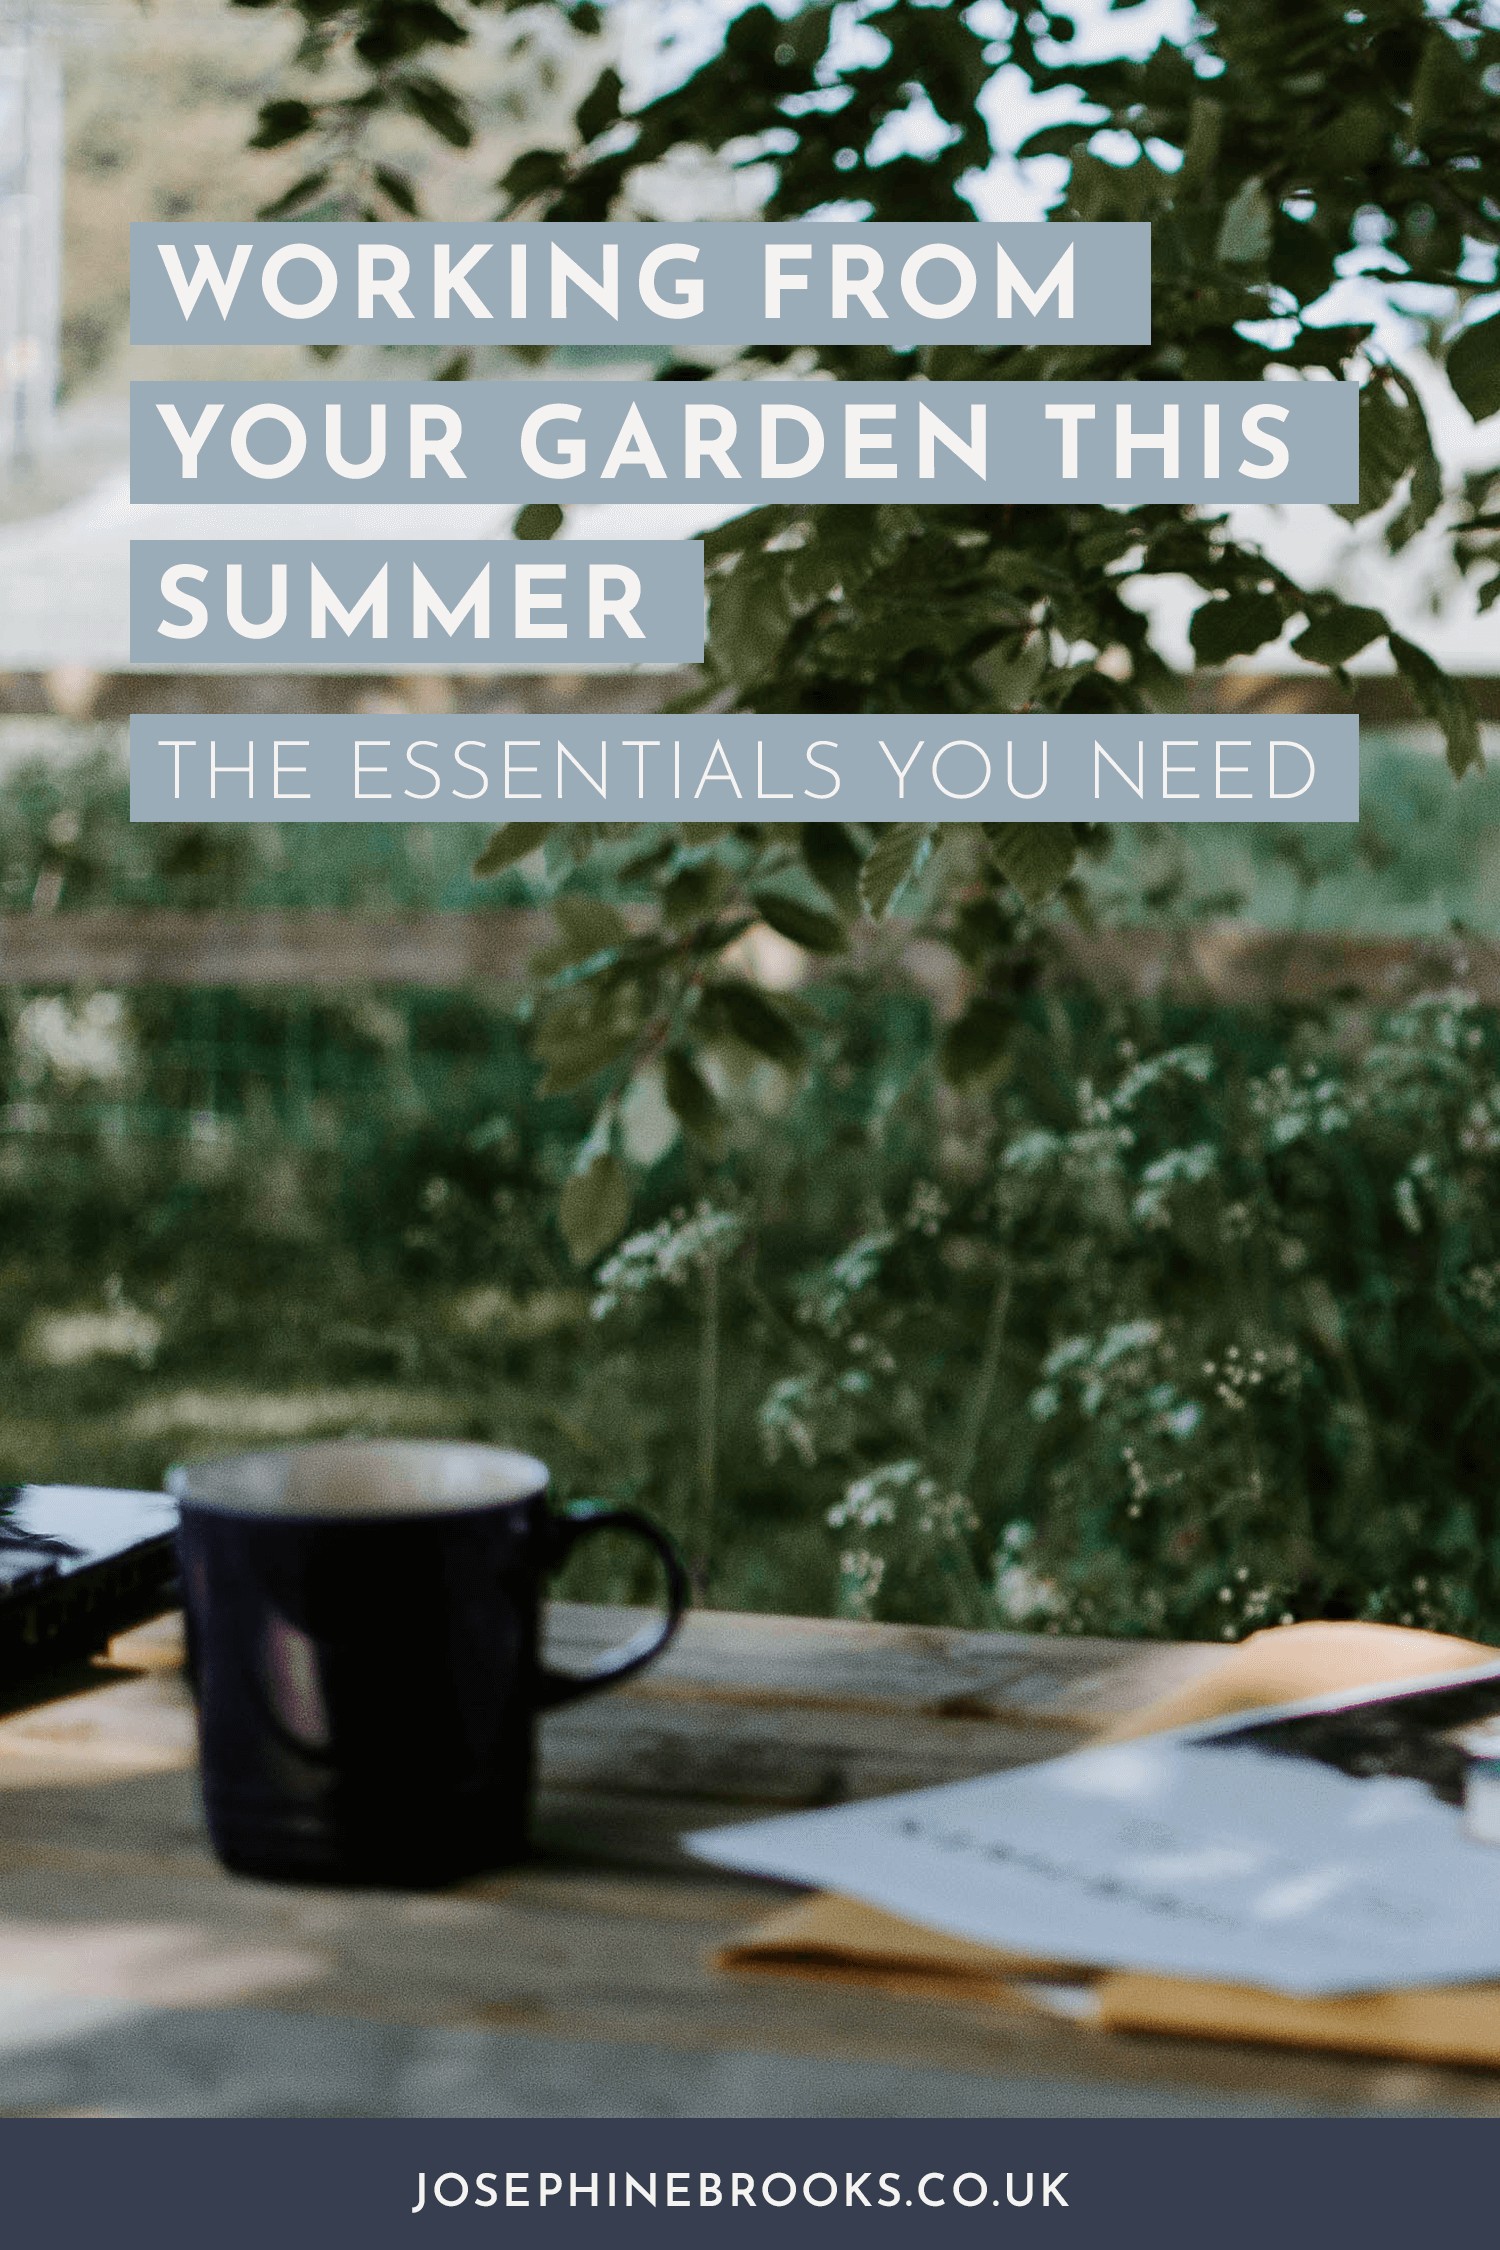 Working from the garden this summer, three essentials you'll need, What you'll need for working from your garden this summer, laptop in the garden, working in the garden, how to work outdoors | Josephine Brooks